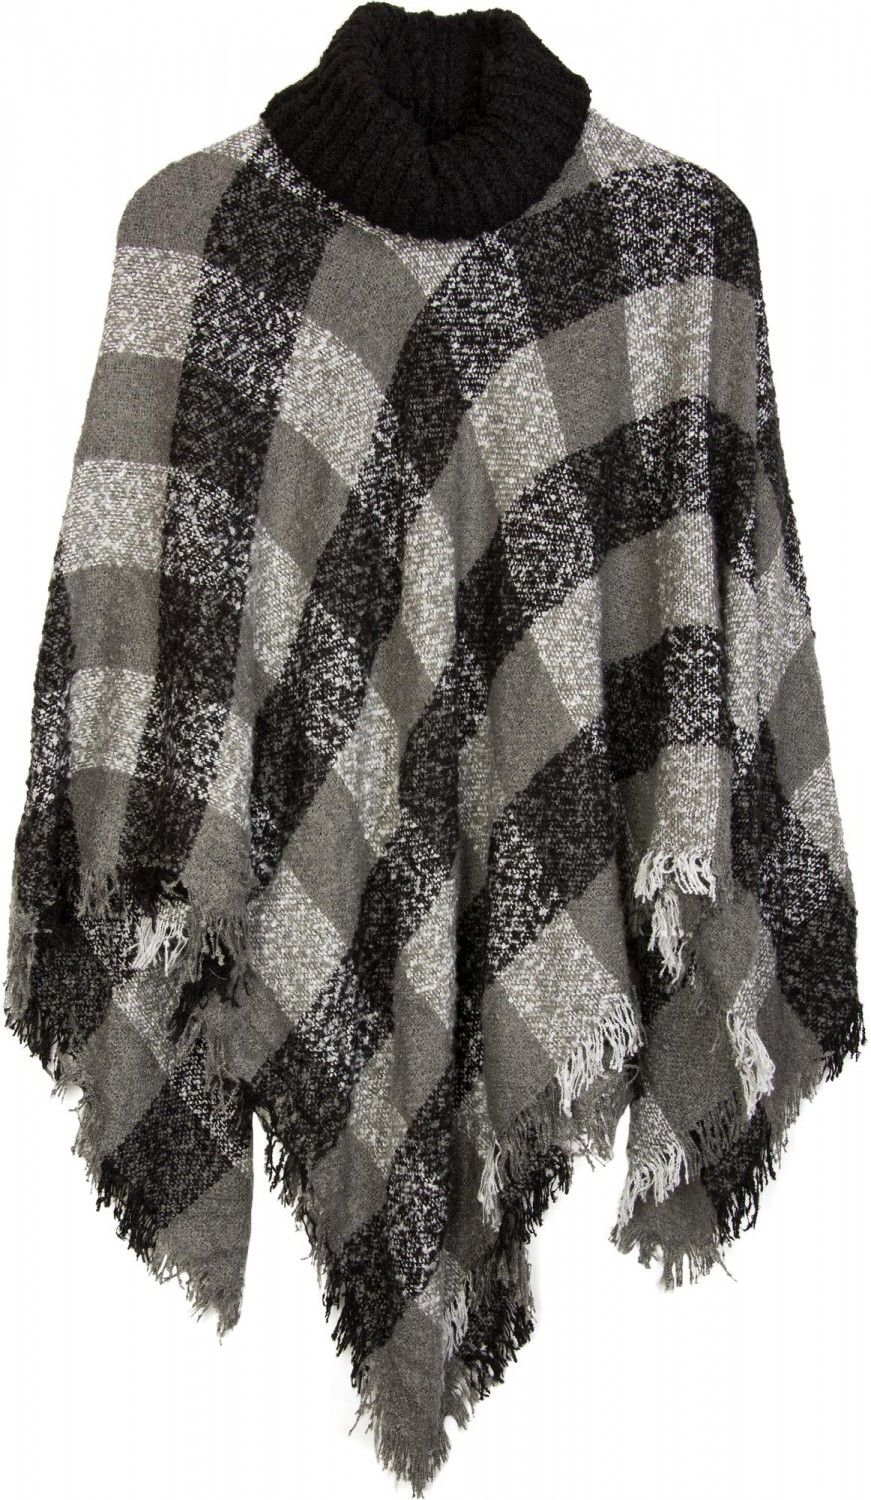 Charmant Leicht Strickponcho Muster Ideen - Strickmuster-Ideen ...